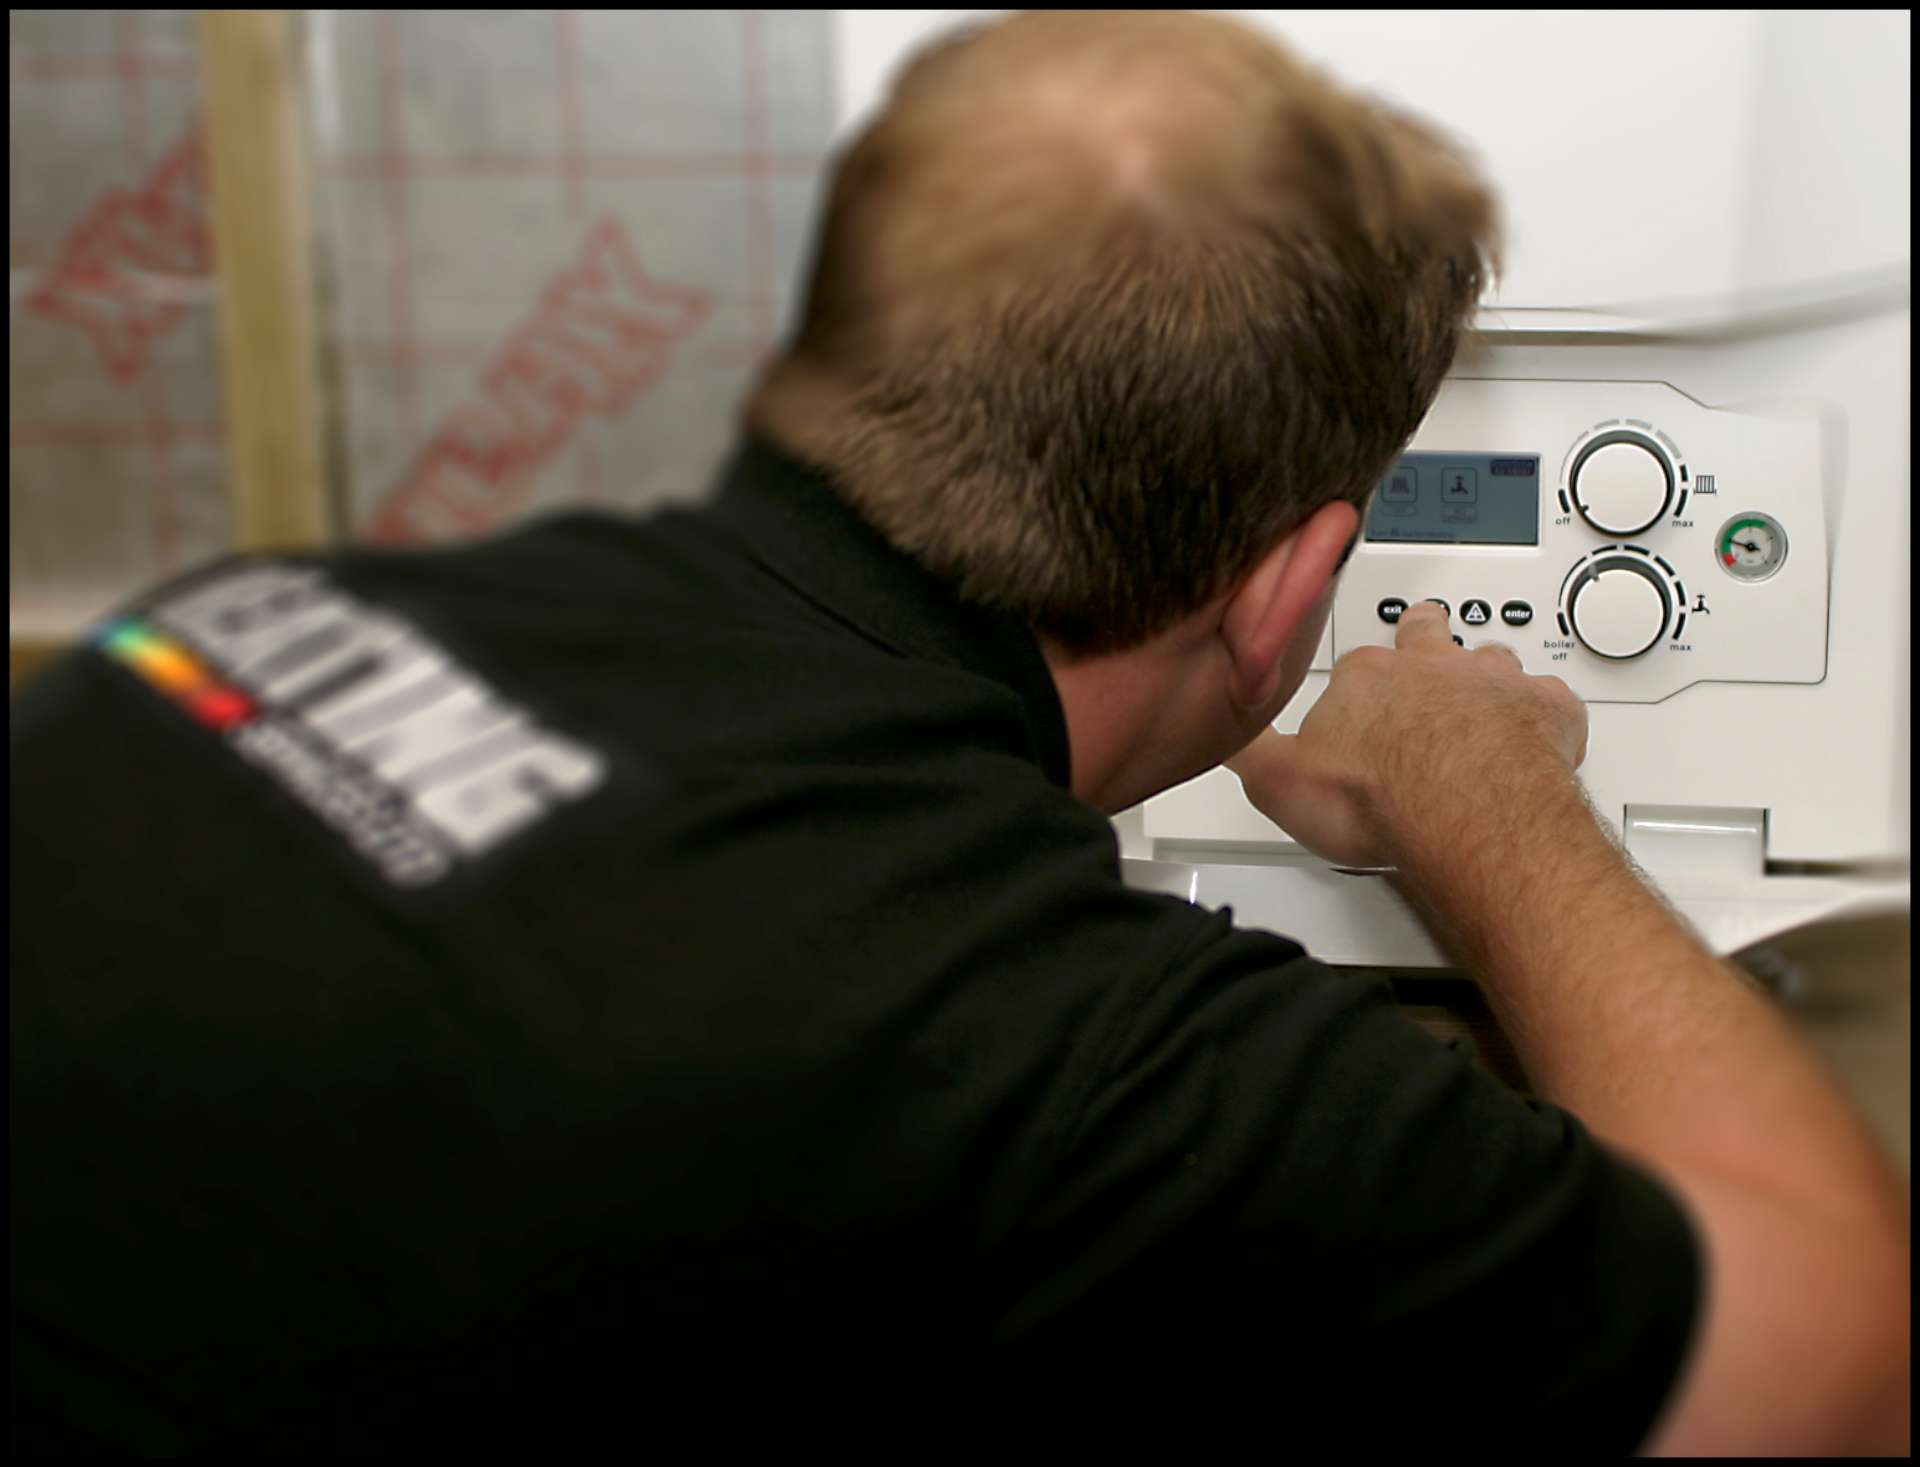 Plumbers Boiler Installation_ Service and Repairs and Bathroom Design and Installation by Heating Services Ltd in Blackheath (5)